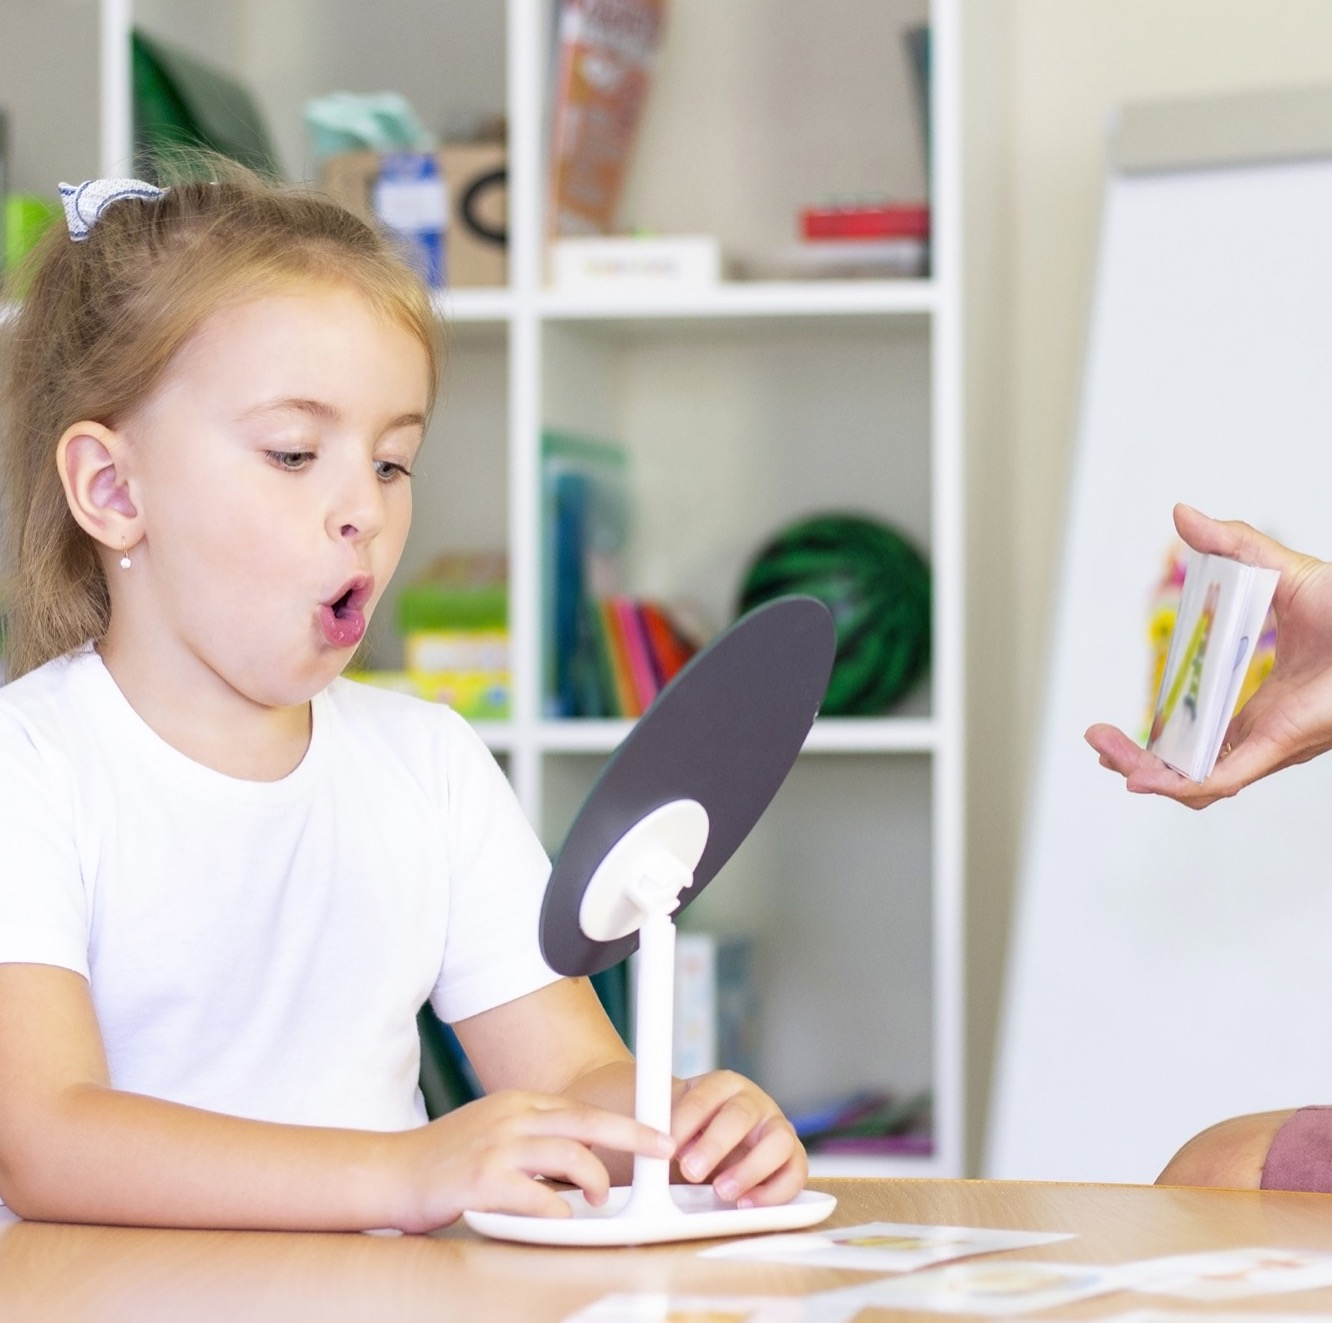 developmental and speech therapy classes with a child-girl. Speech therapy exercises and games with a mirror and cards